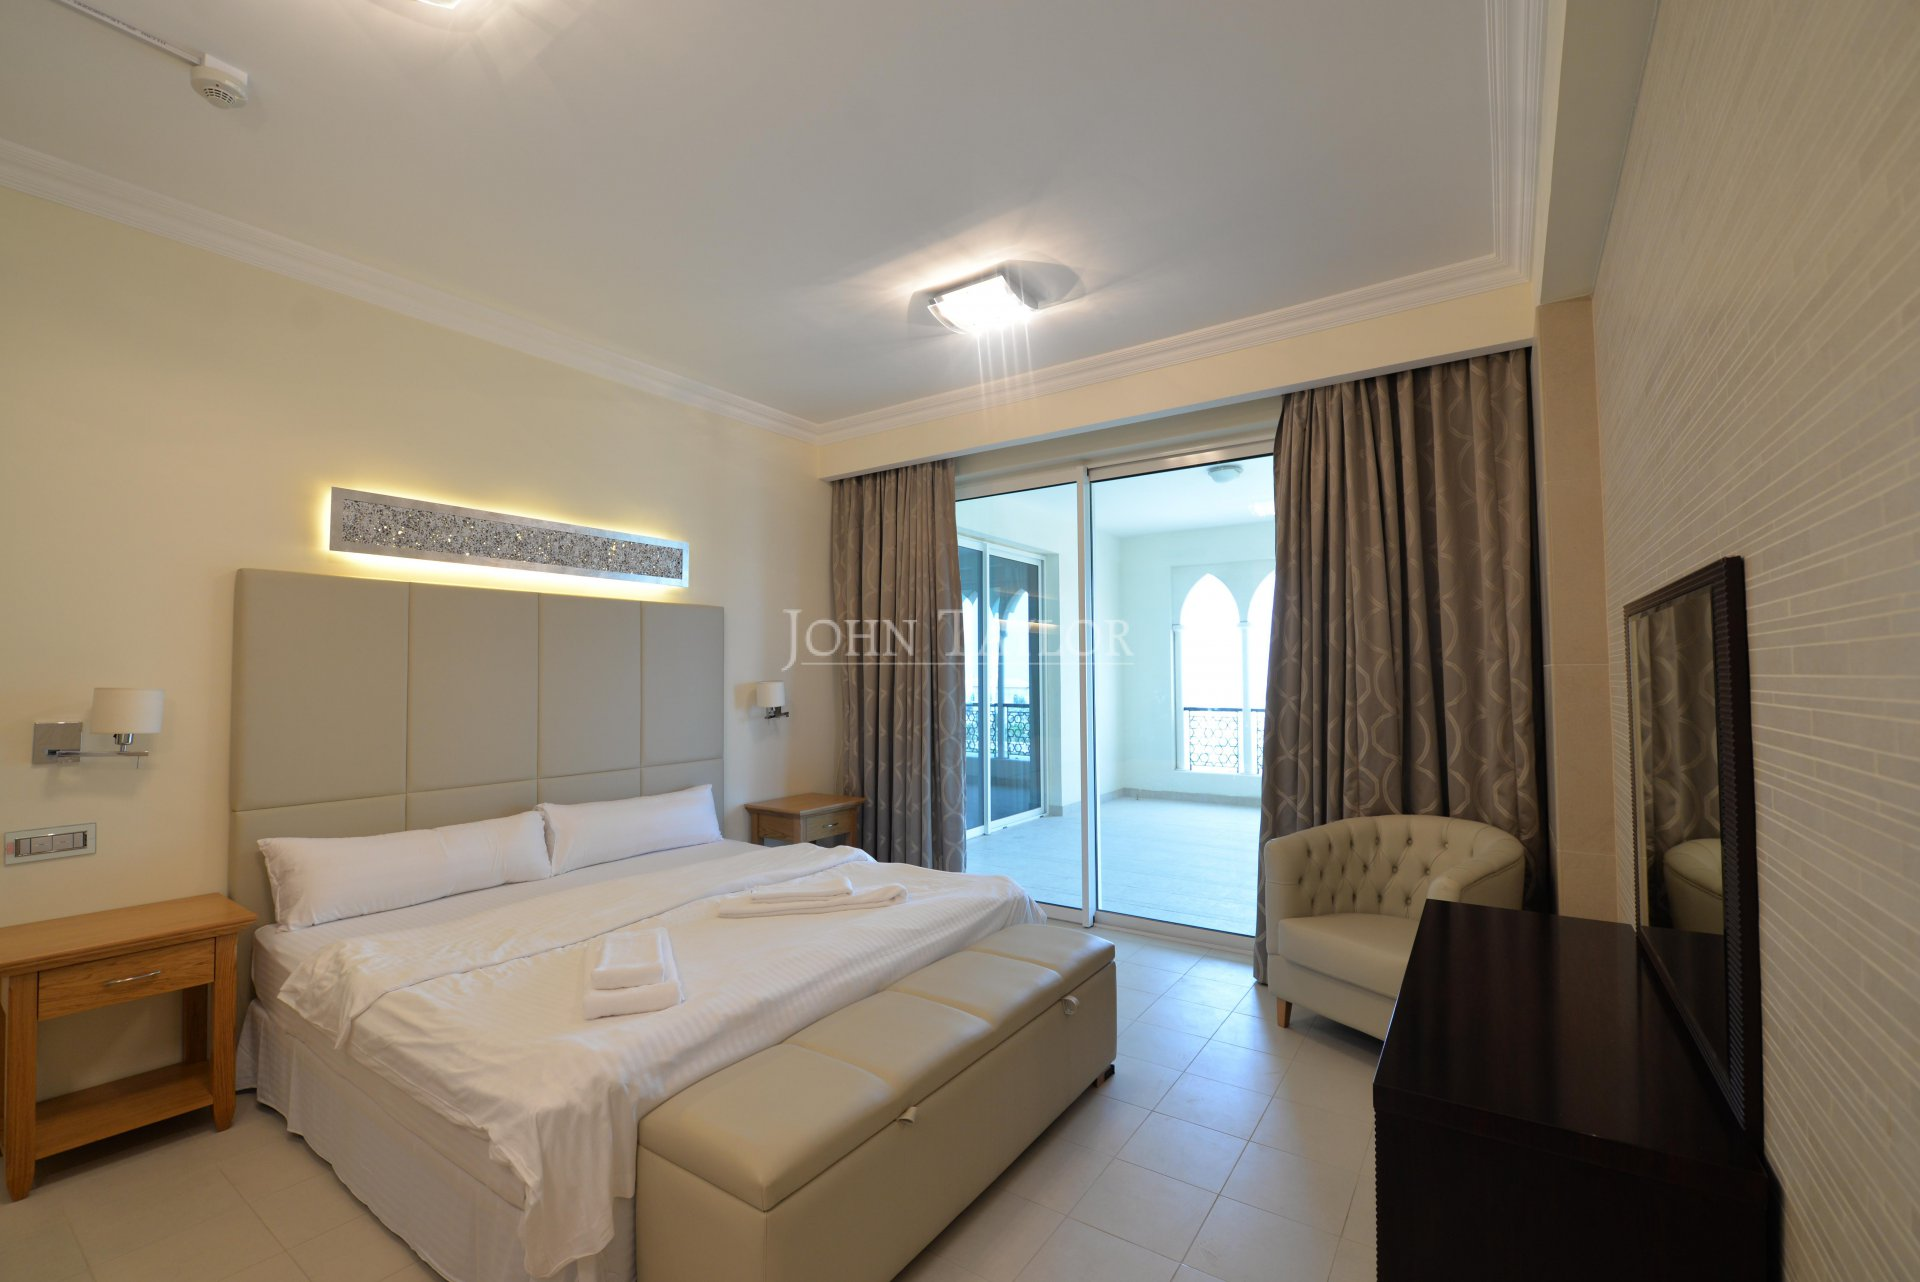 Ad Rental Apartment Doha (The Pearl), 2 Rooms, 153 m² ...